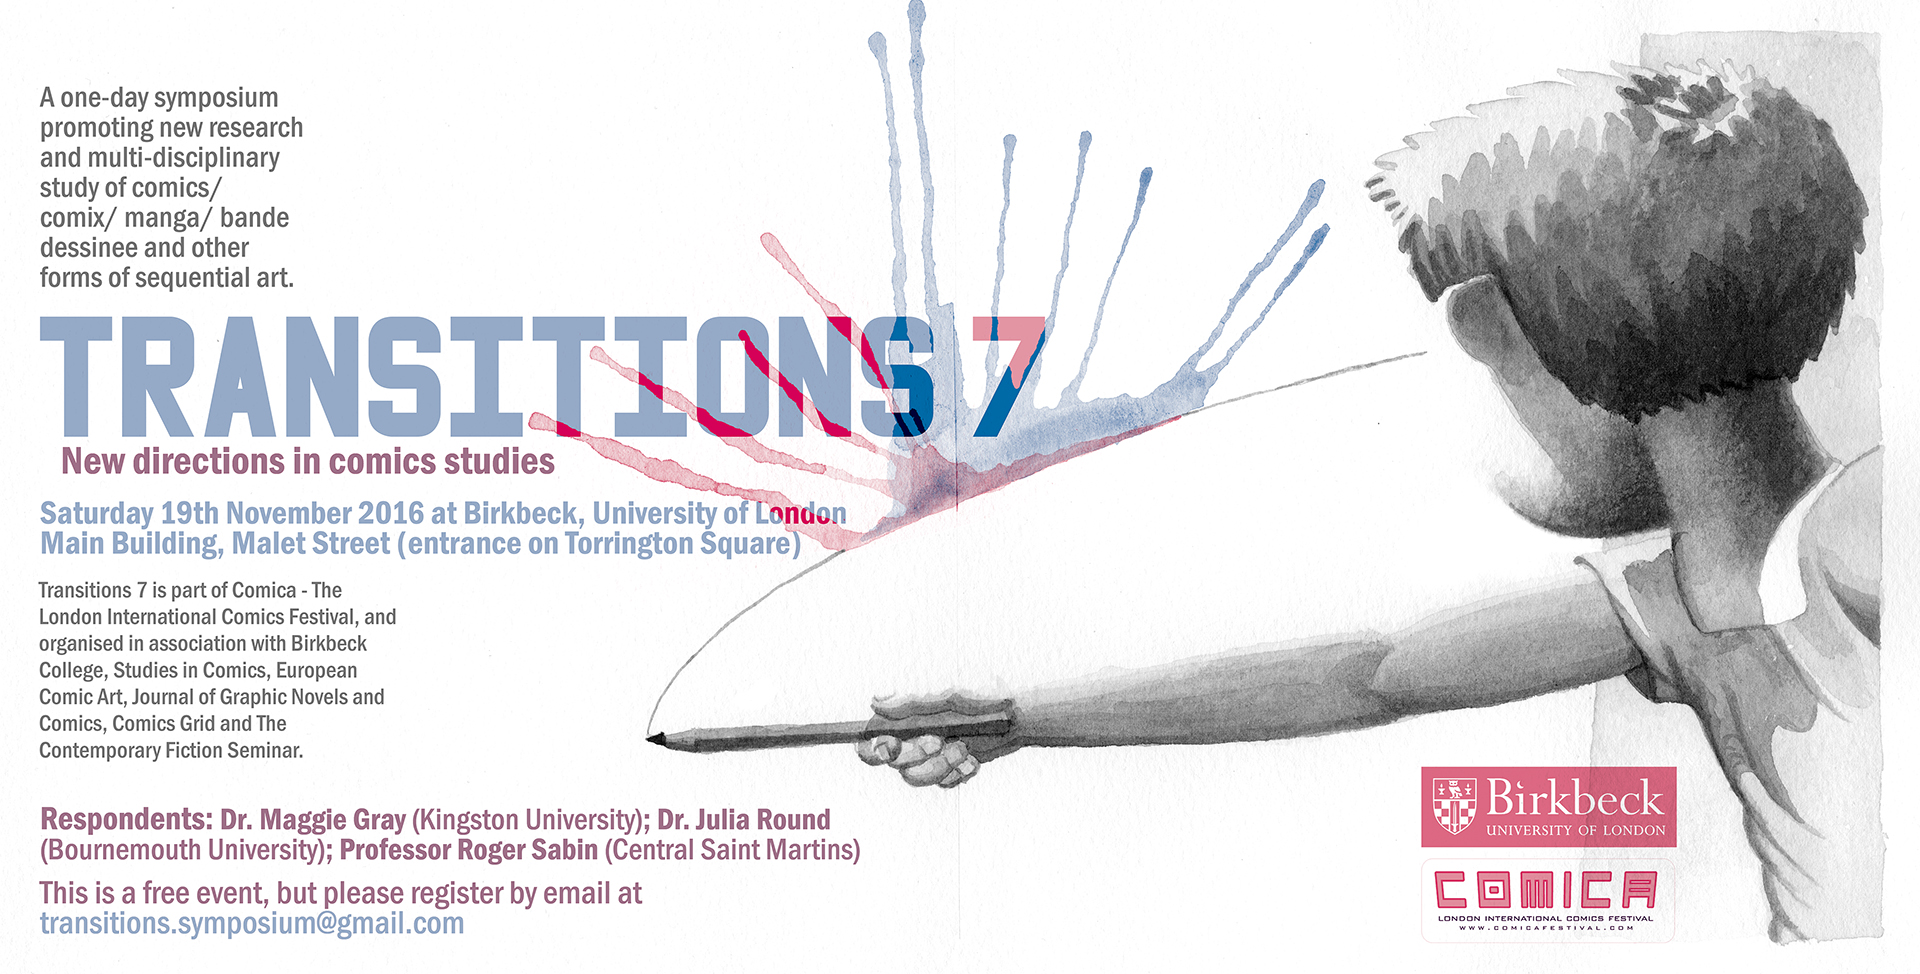 TRANSITIONS 7 – New Directions in Comics Studies